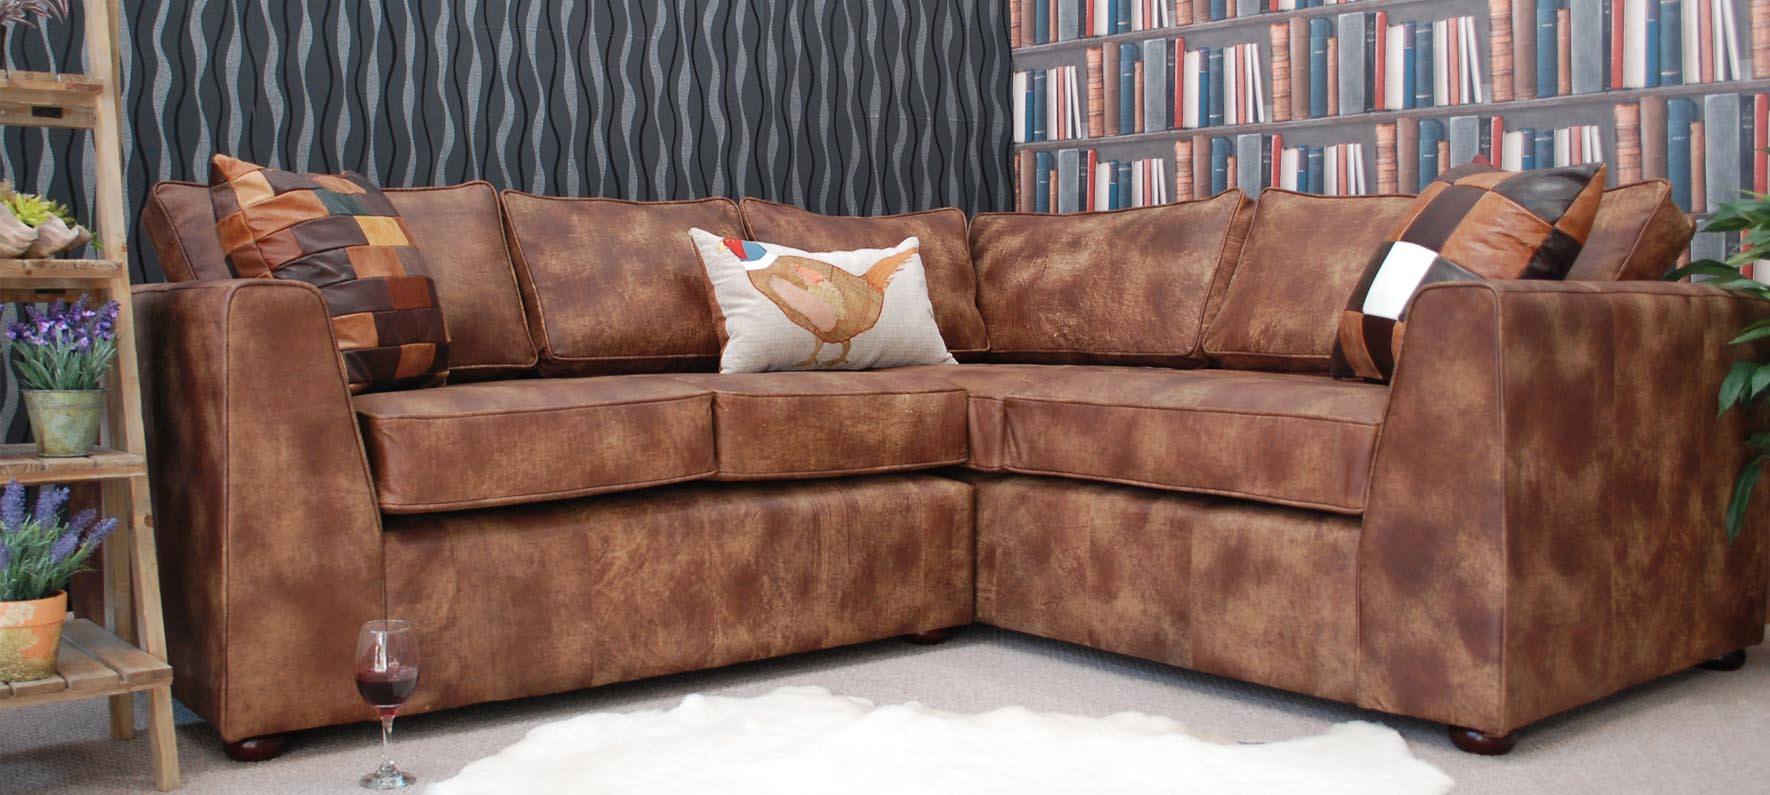 sofa manufacturer uk with one cushion leather shop full grain british made vintage